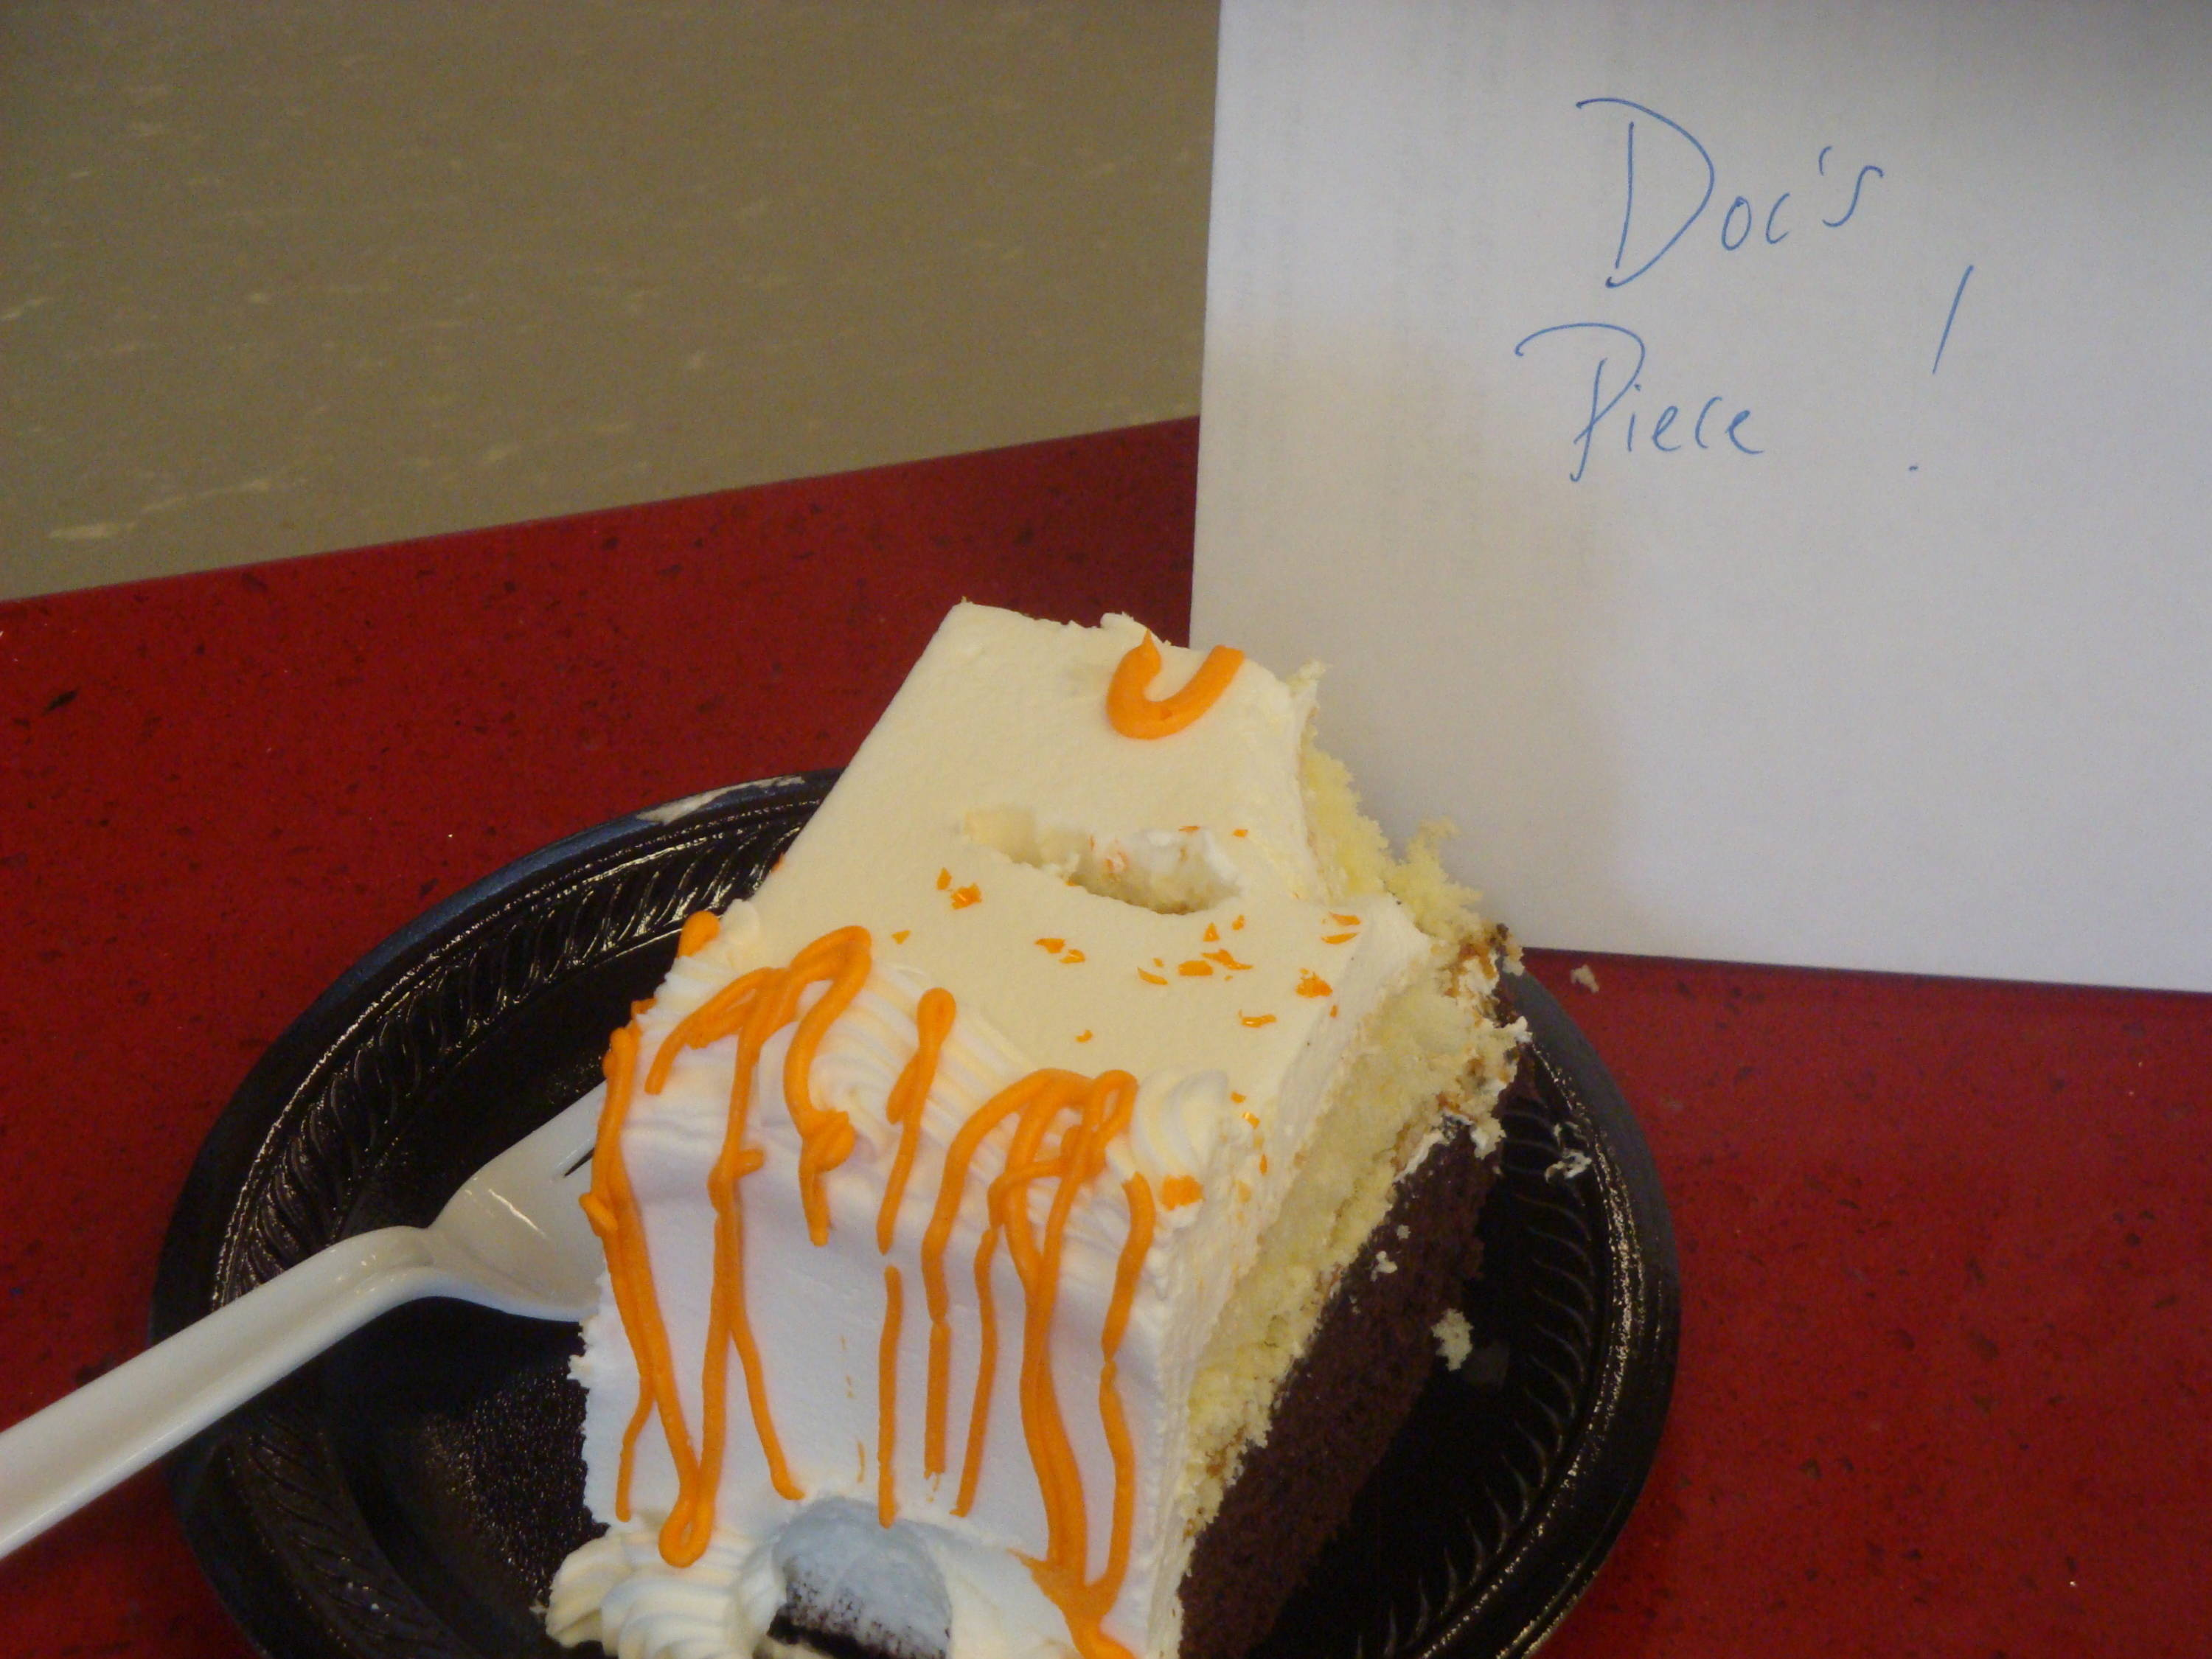 Here is Doc's piece of cake - that's a slice for a King!